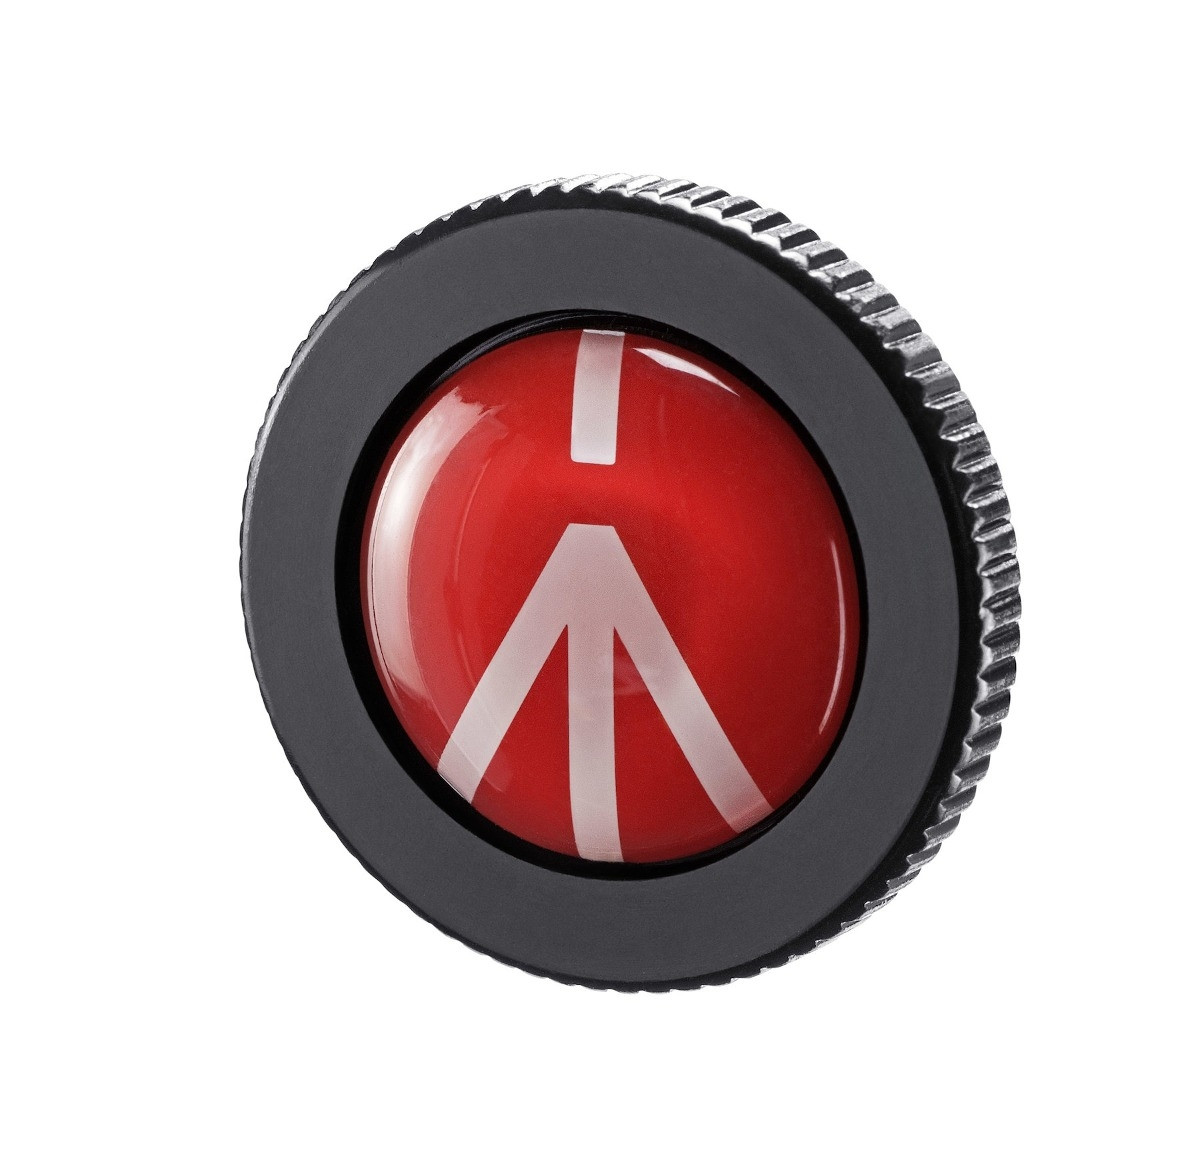 manfrotto round-pl zapata para tripie compact action 719821378556